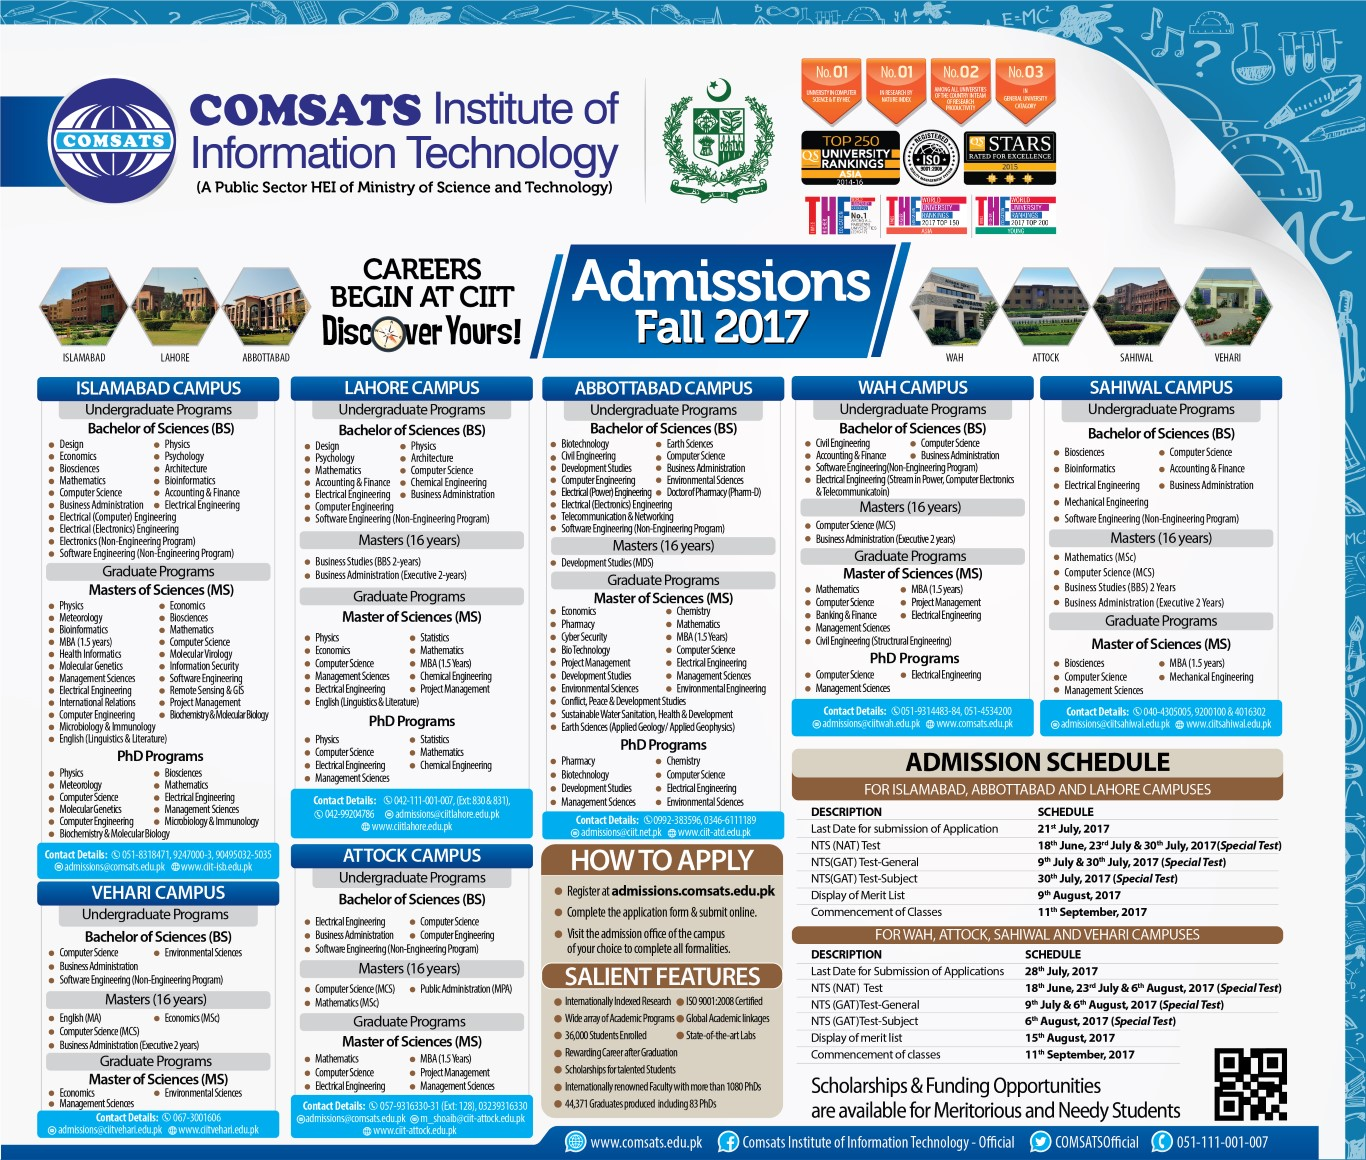 COMSATS Institute of Information Technology – Admissions Open 2017